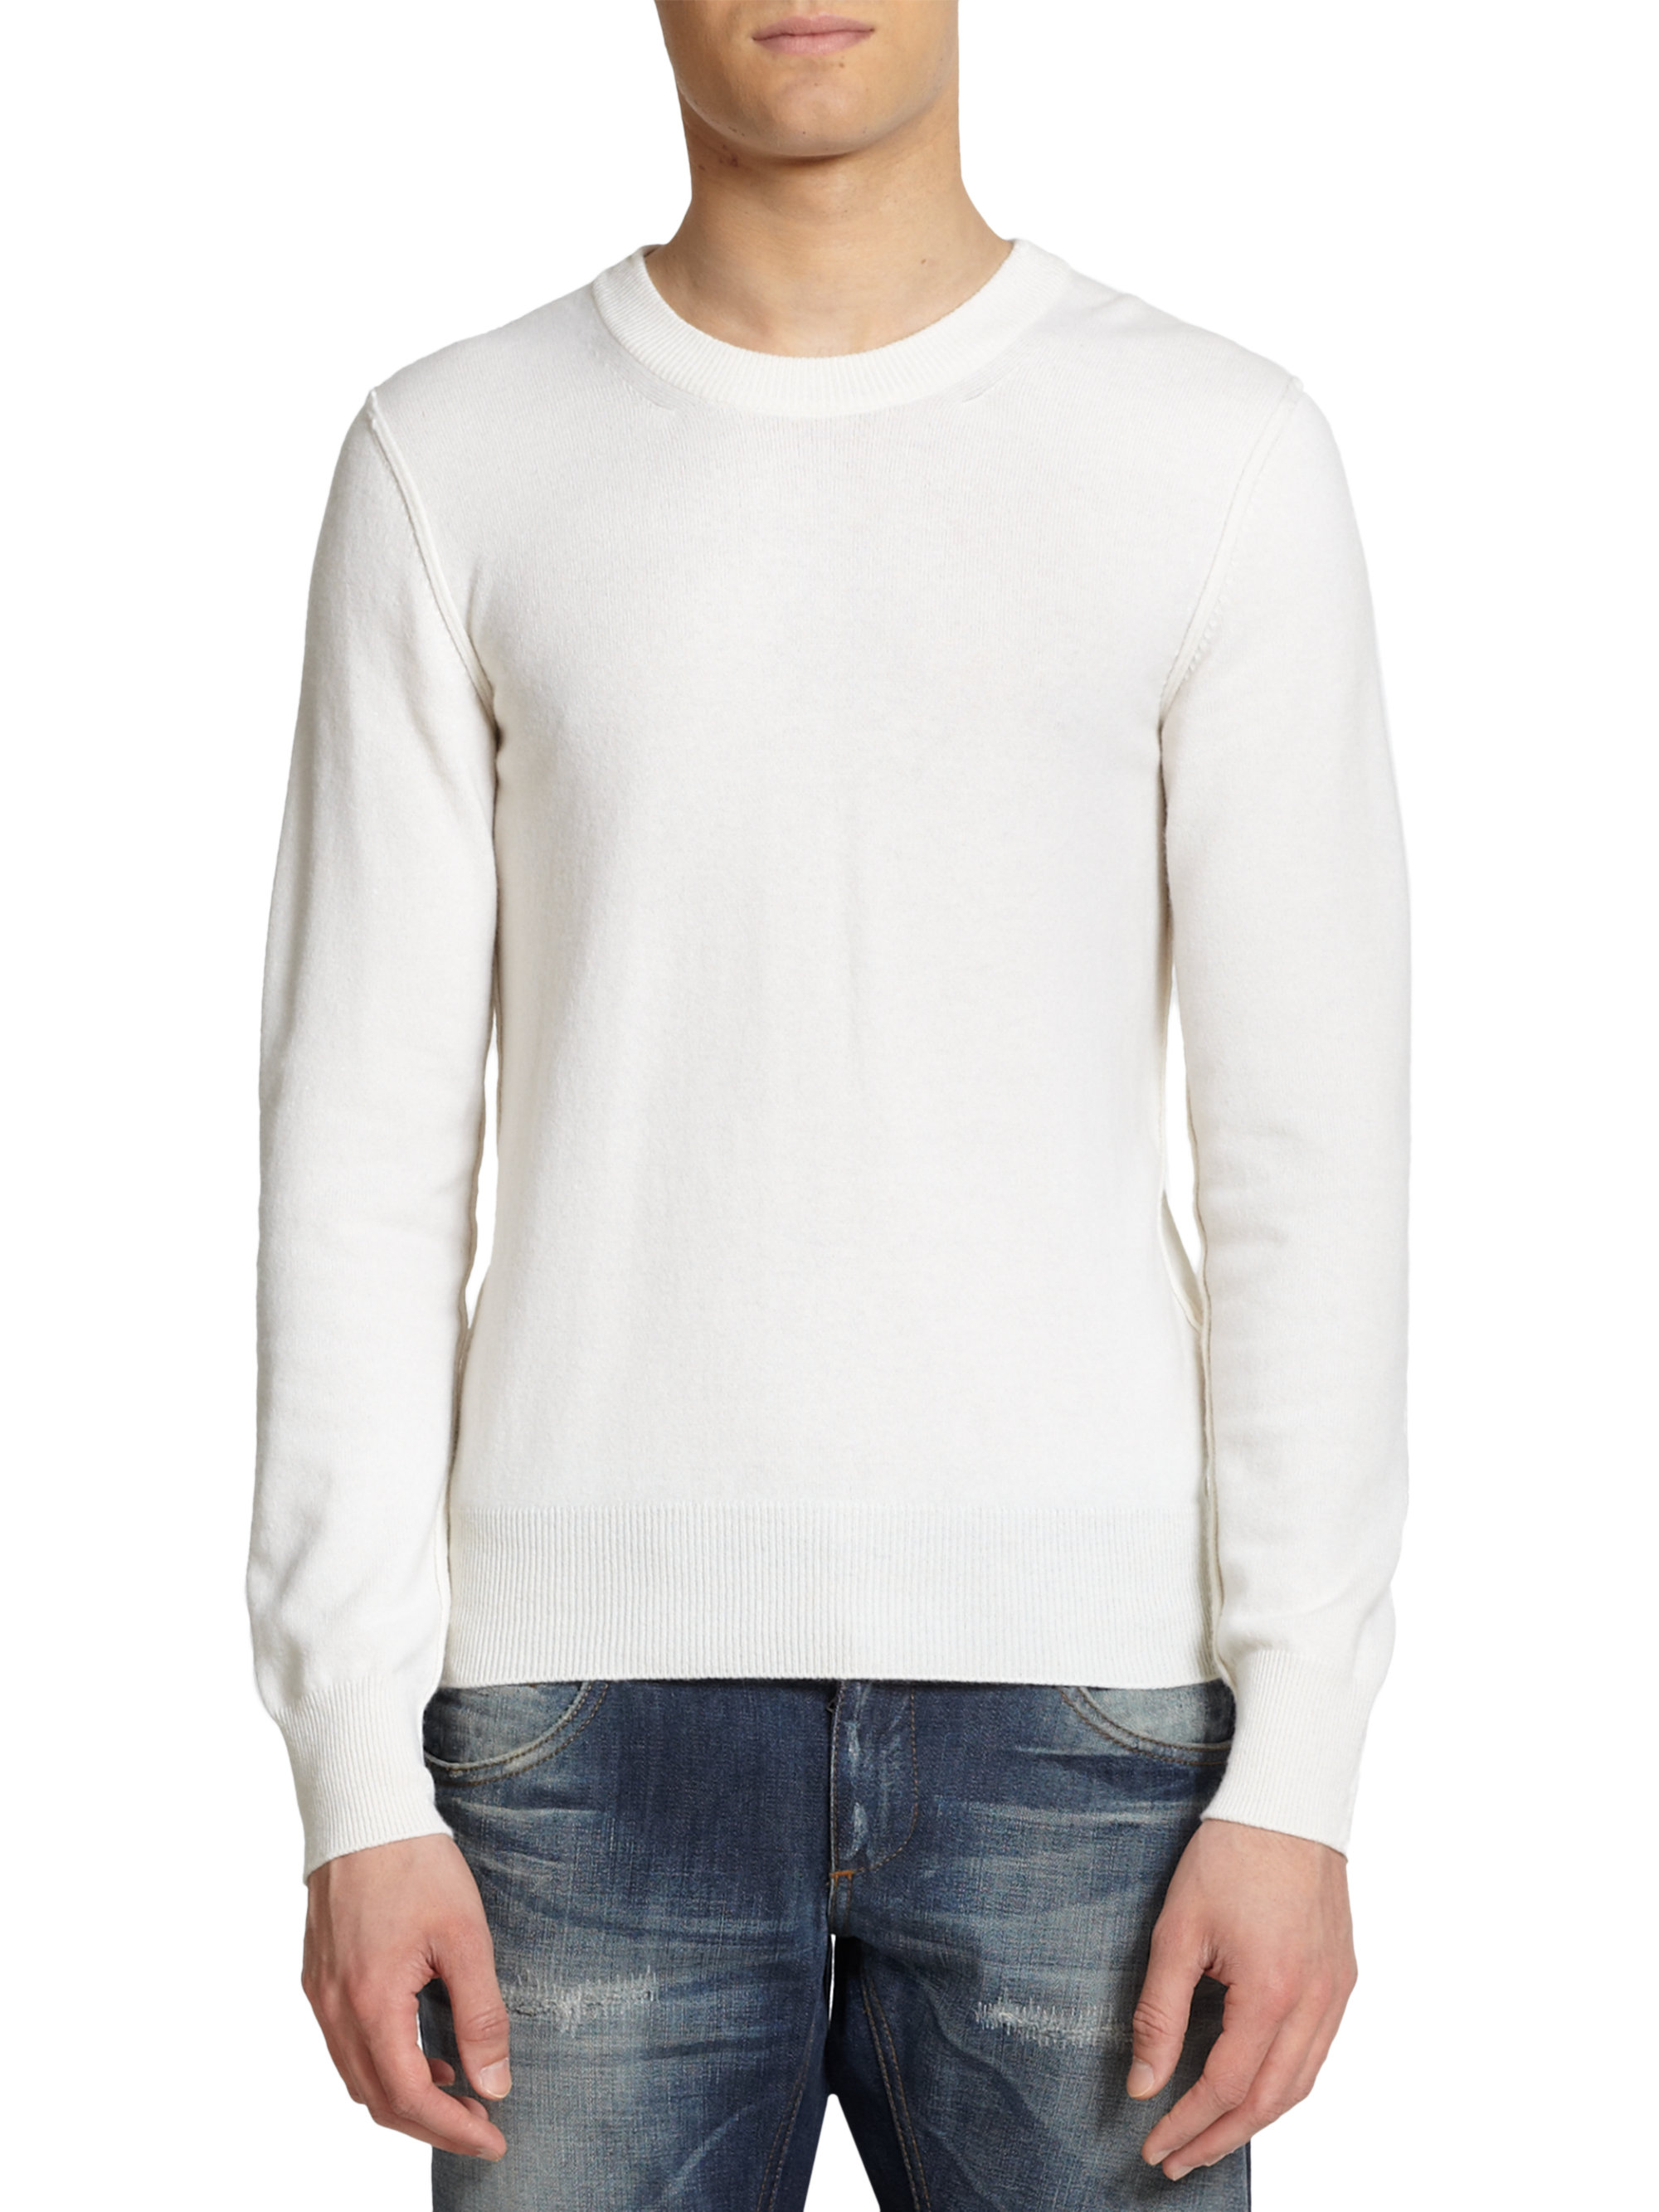 Dolce & gabbana Cashmere Crewneck Pullover Sweater in White for ...